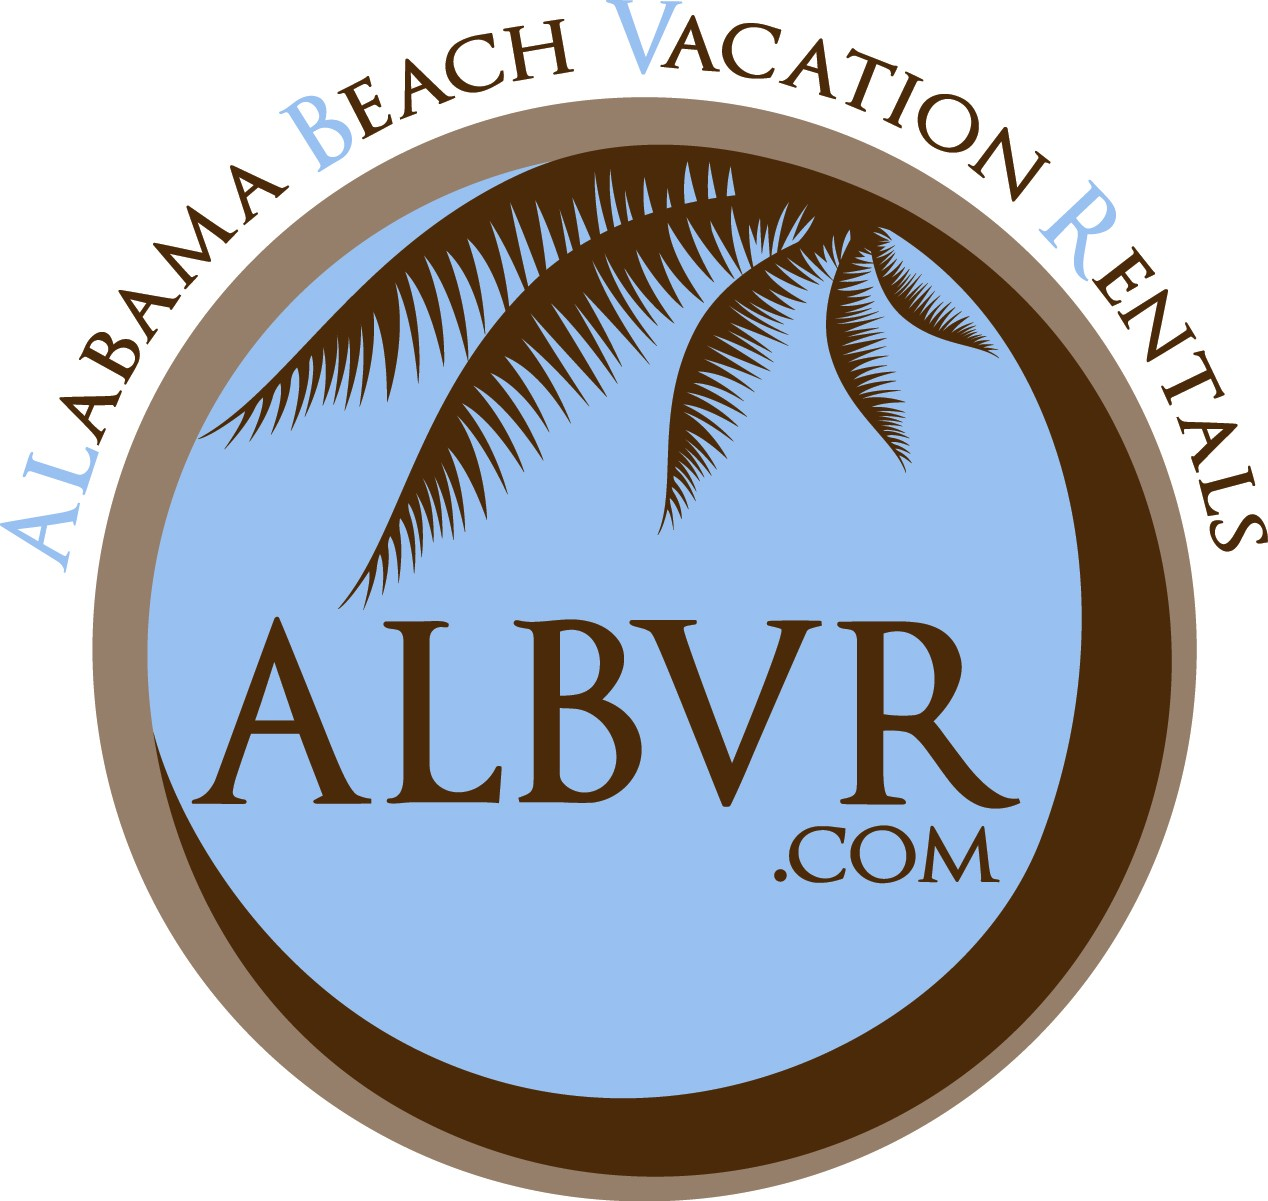 Alabama Beach Vacation Rentals.